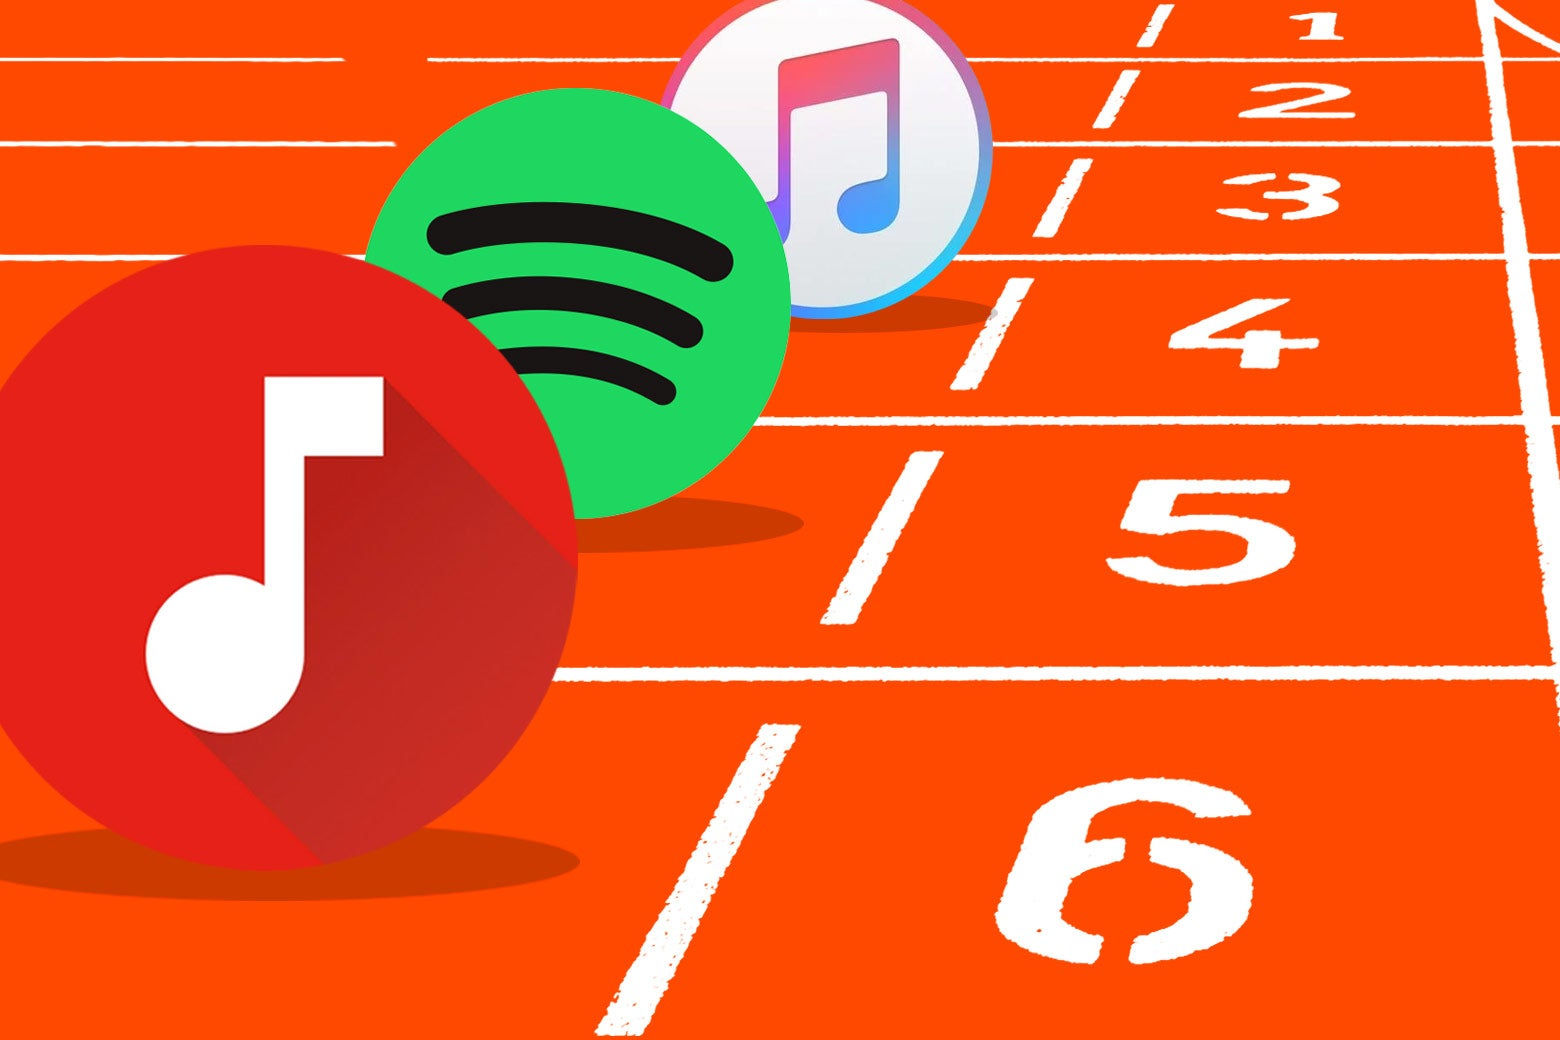 Apple Music, Spotify, and YouTube Music logos at the starting line on a track.